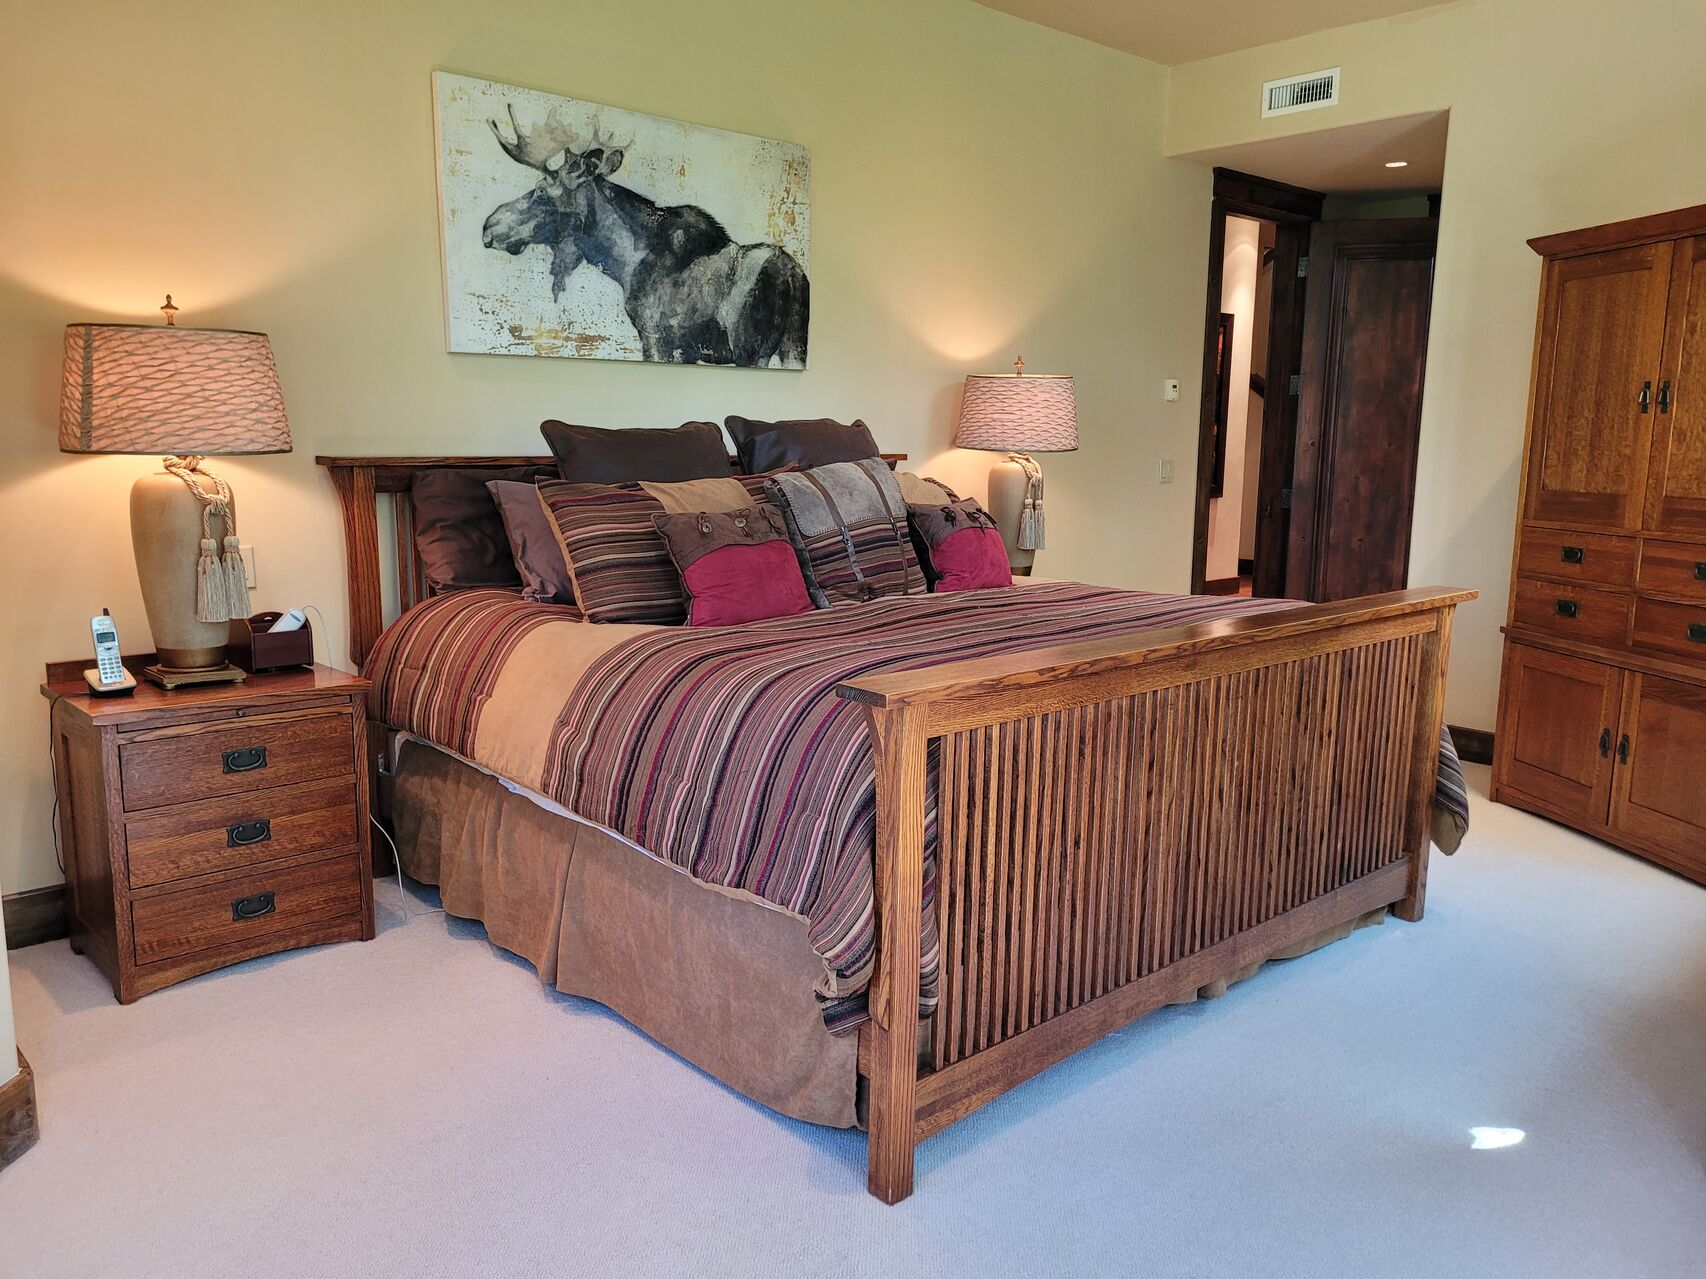 Large bed with wood frame and wood furniture